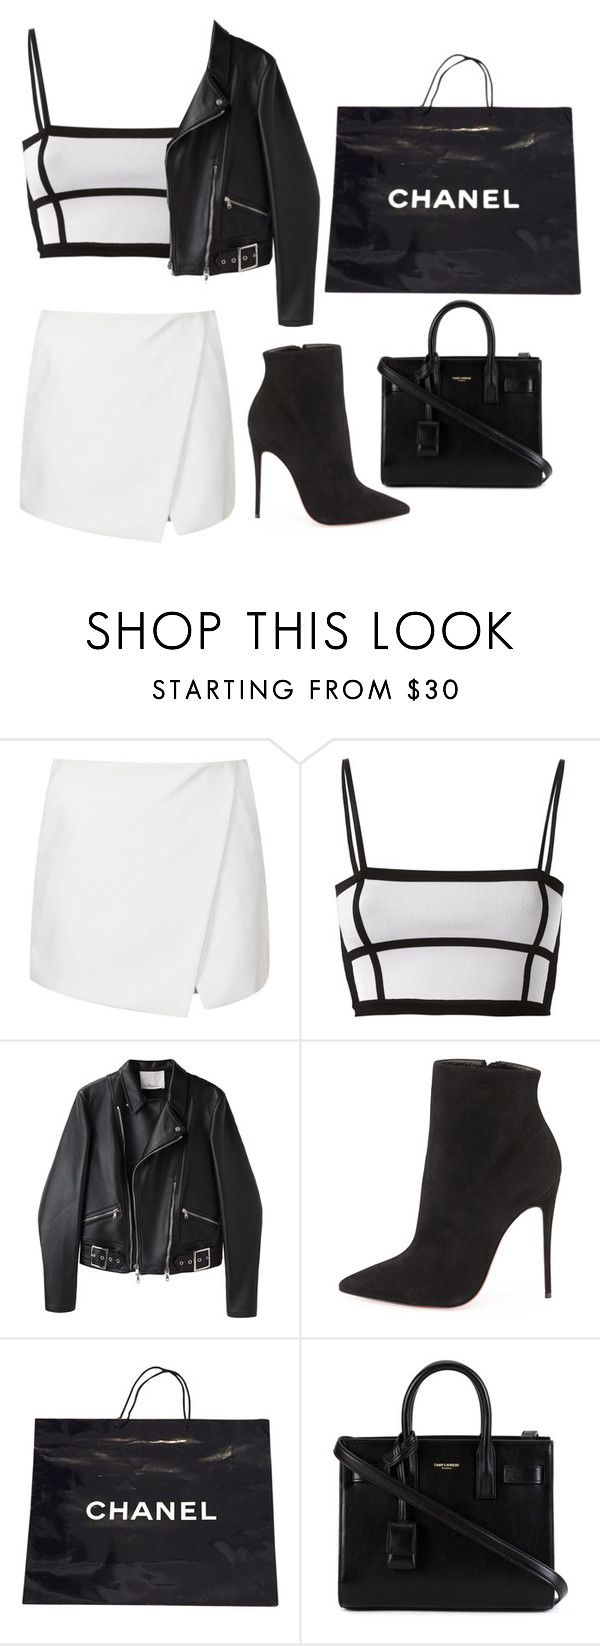 """""""Untitled #917"""" by arianas12 ❤ liked on Polyvore featuring Topshop, Balmain, 3.1 Phillip Lim, Christian Louboutin, Chanel and Yves Saint Laurent"""